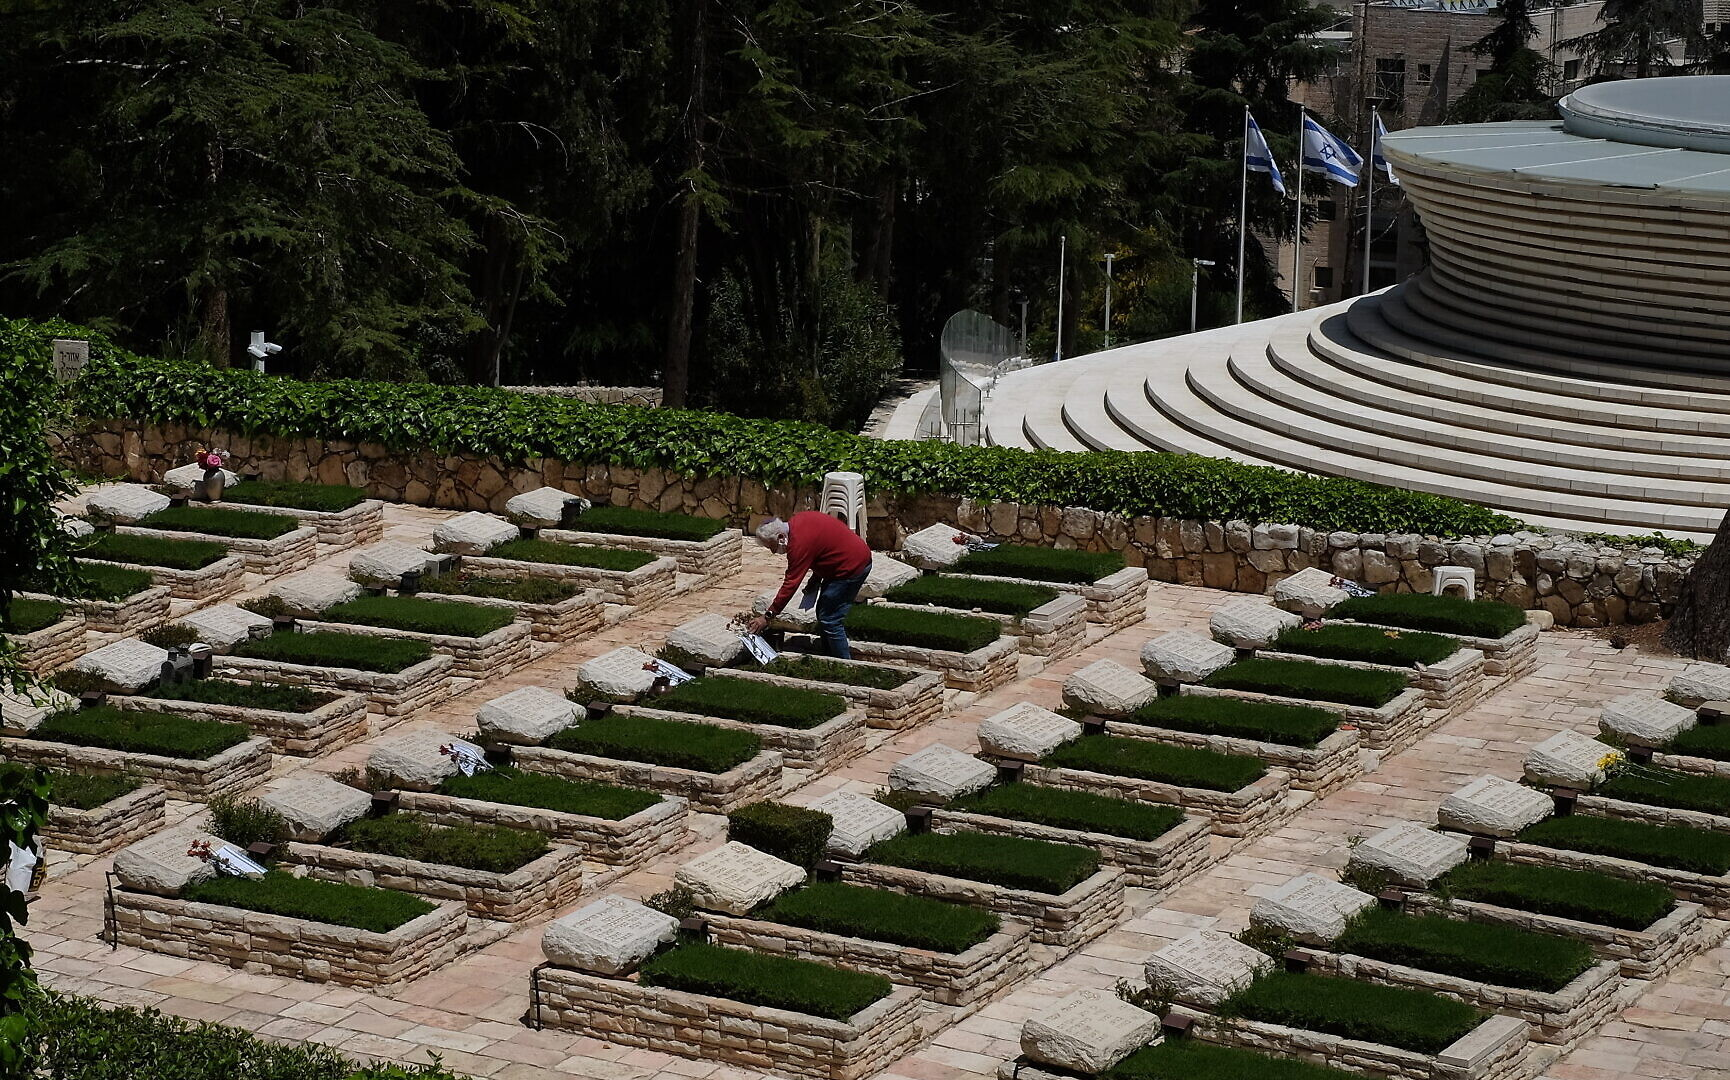 Chaim Frenkel puts a flower and a note on a grave on Mount Herzl in Jerusalem ahead of next week's Memorial Day, on April 23, 2020. (Judah Ari Gross/Times of Israel)